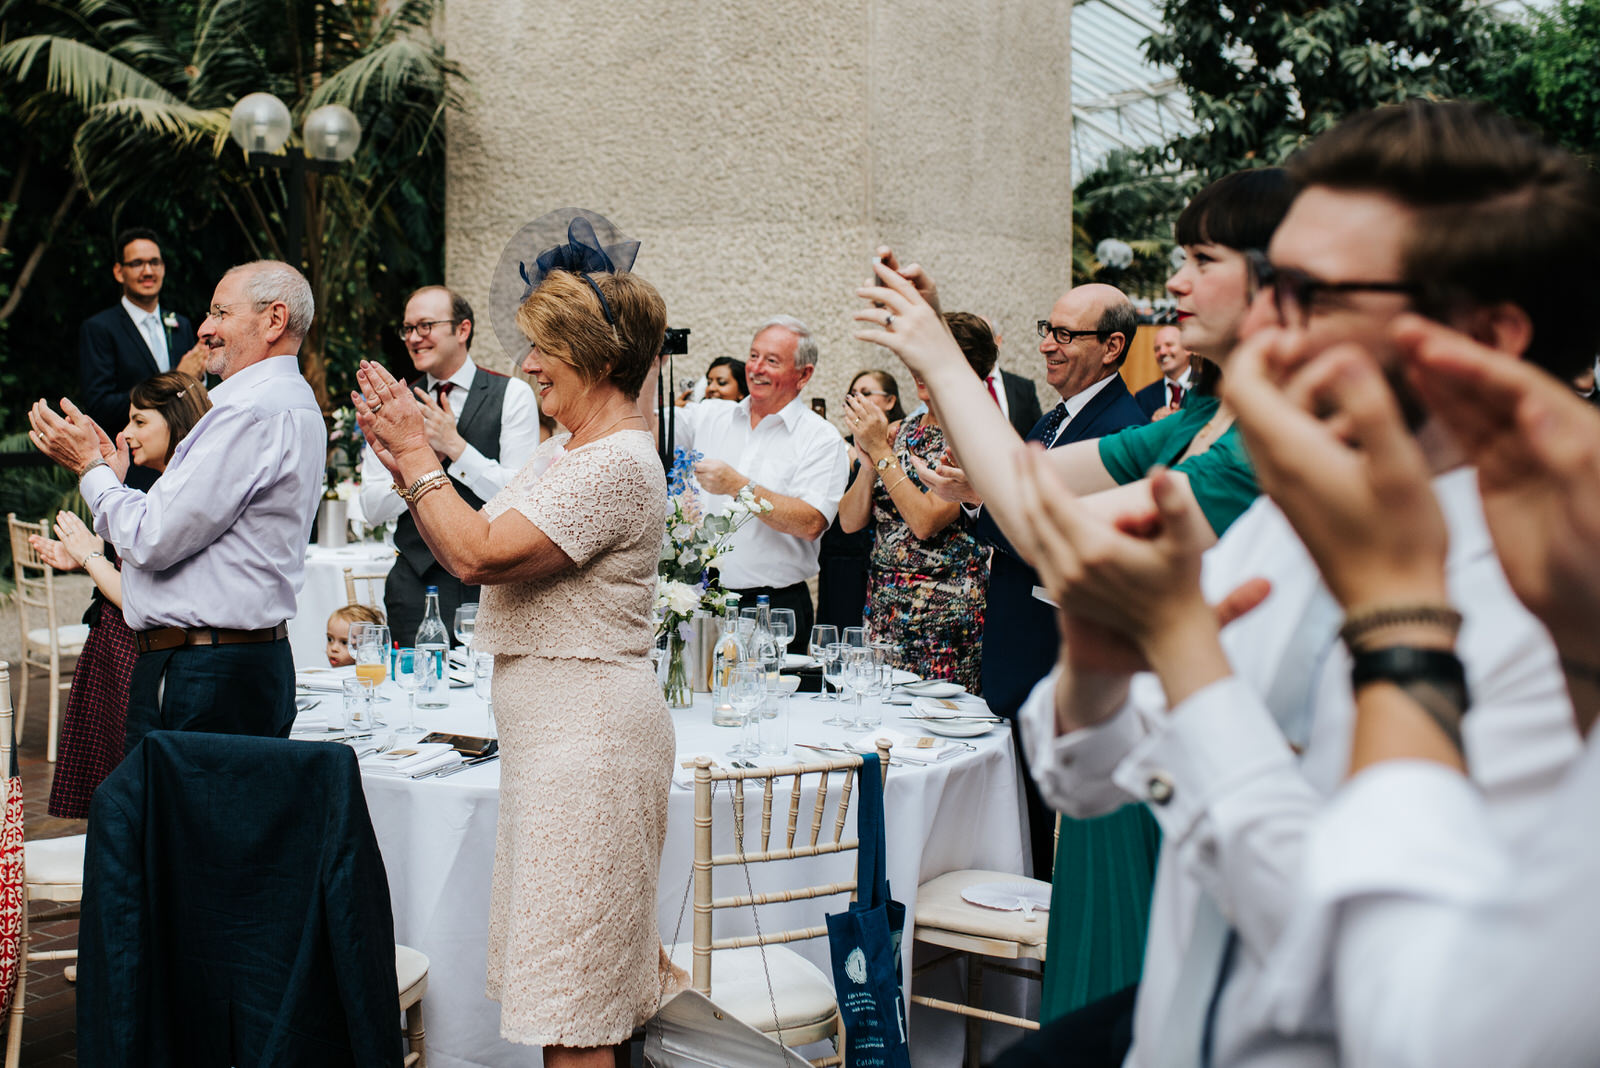 Guests clap and take photos as bride and groom enter wedding bre